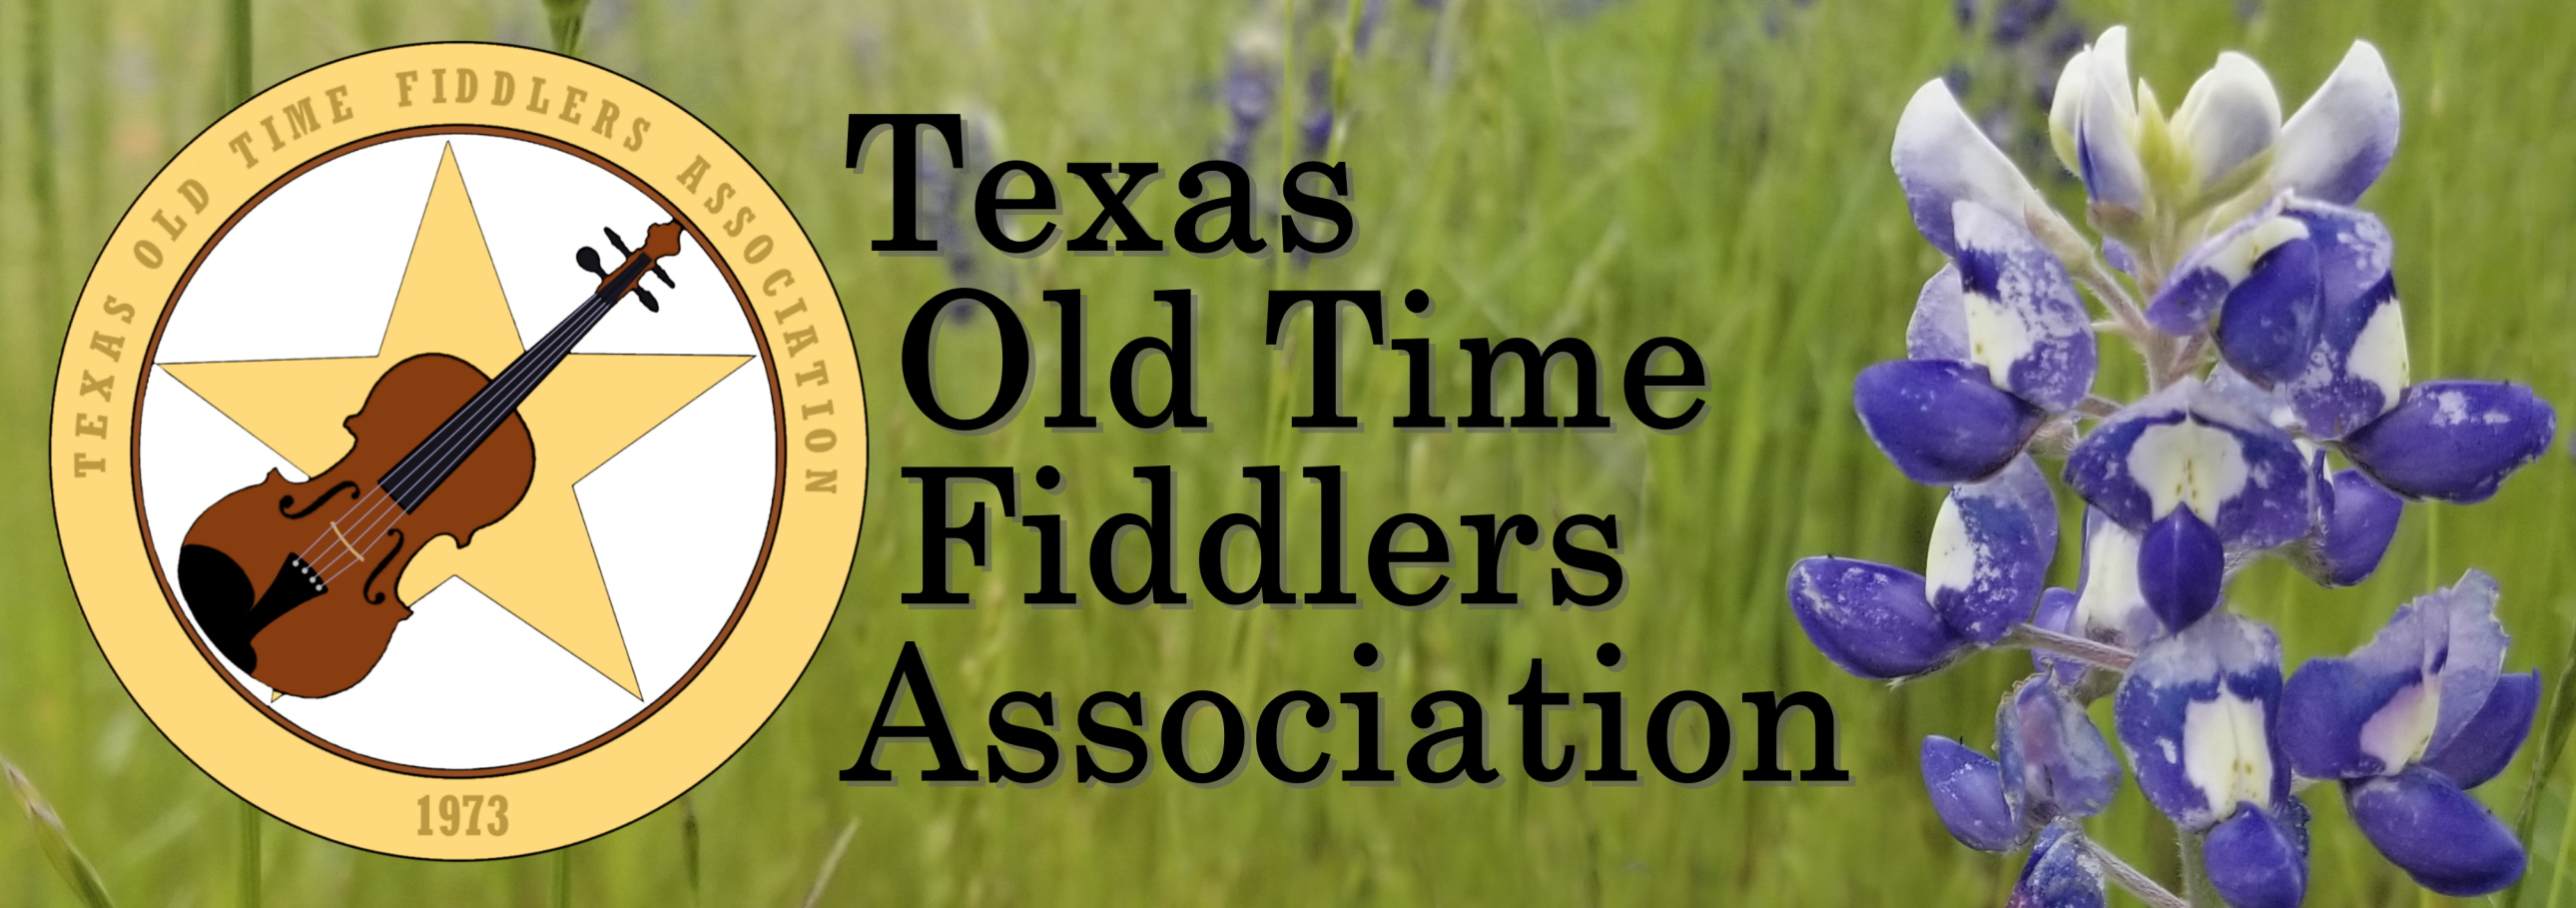 Support the Texas Old Time Fiddlers Association